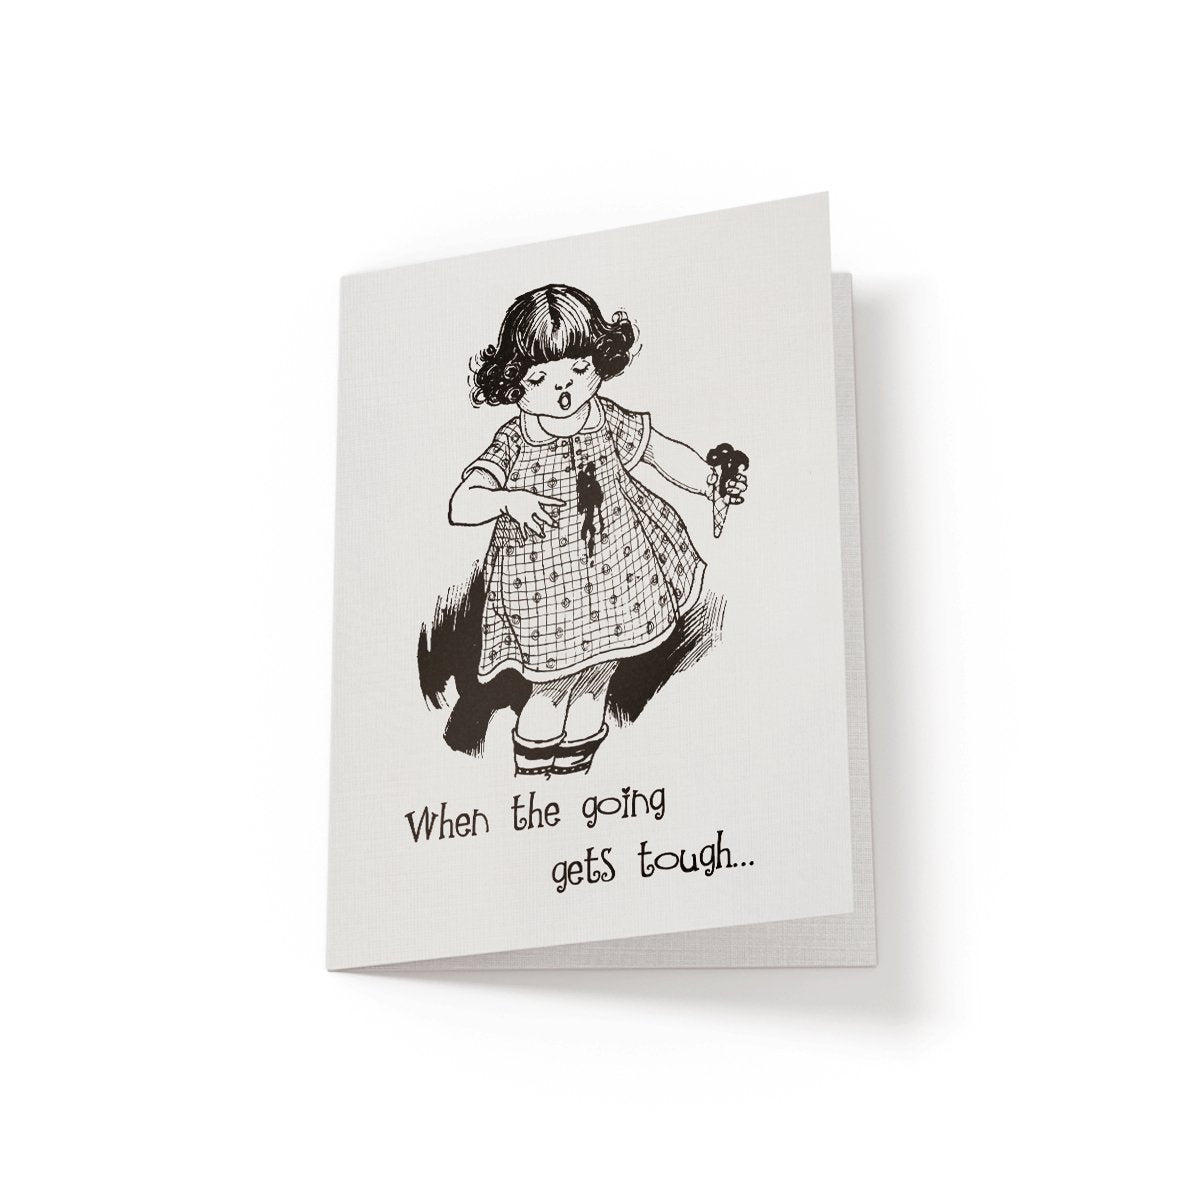 When the going gets tough - Greeting Card - Netties Expressions